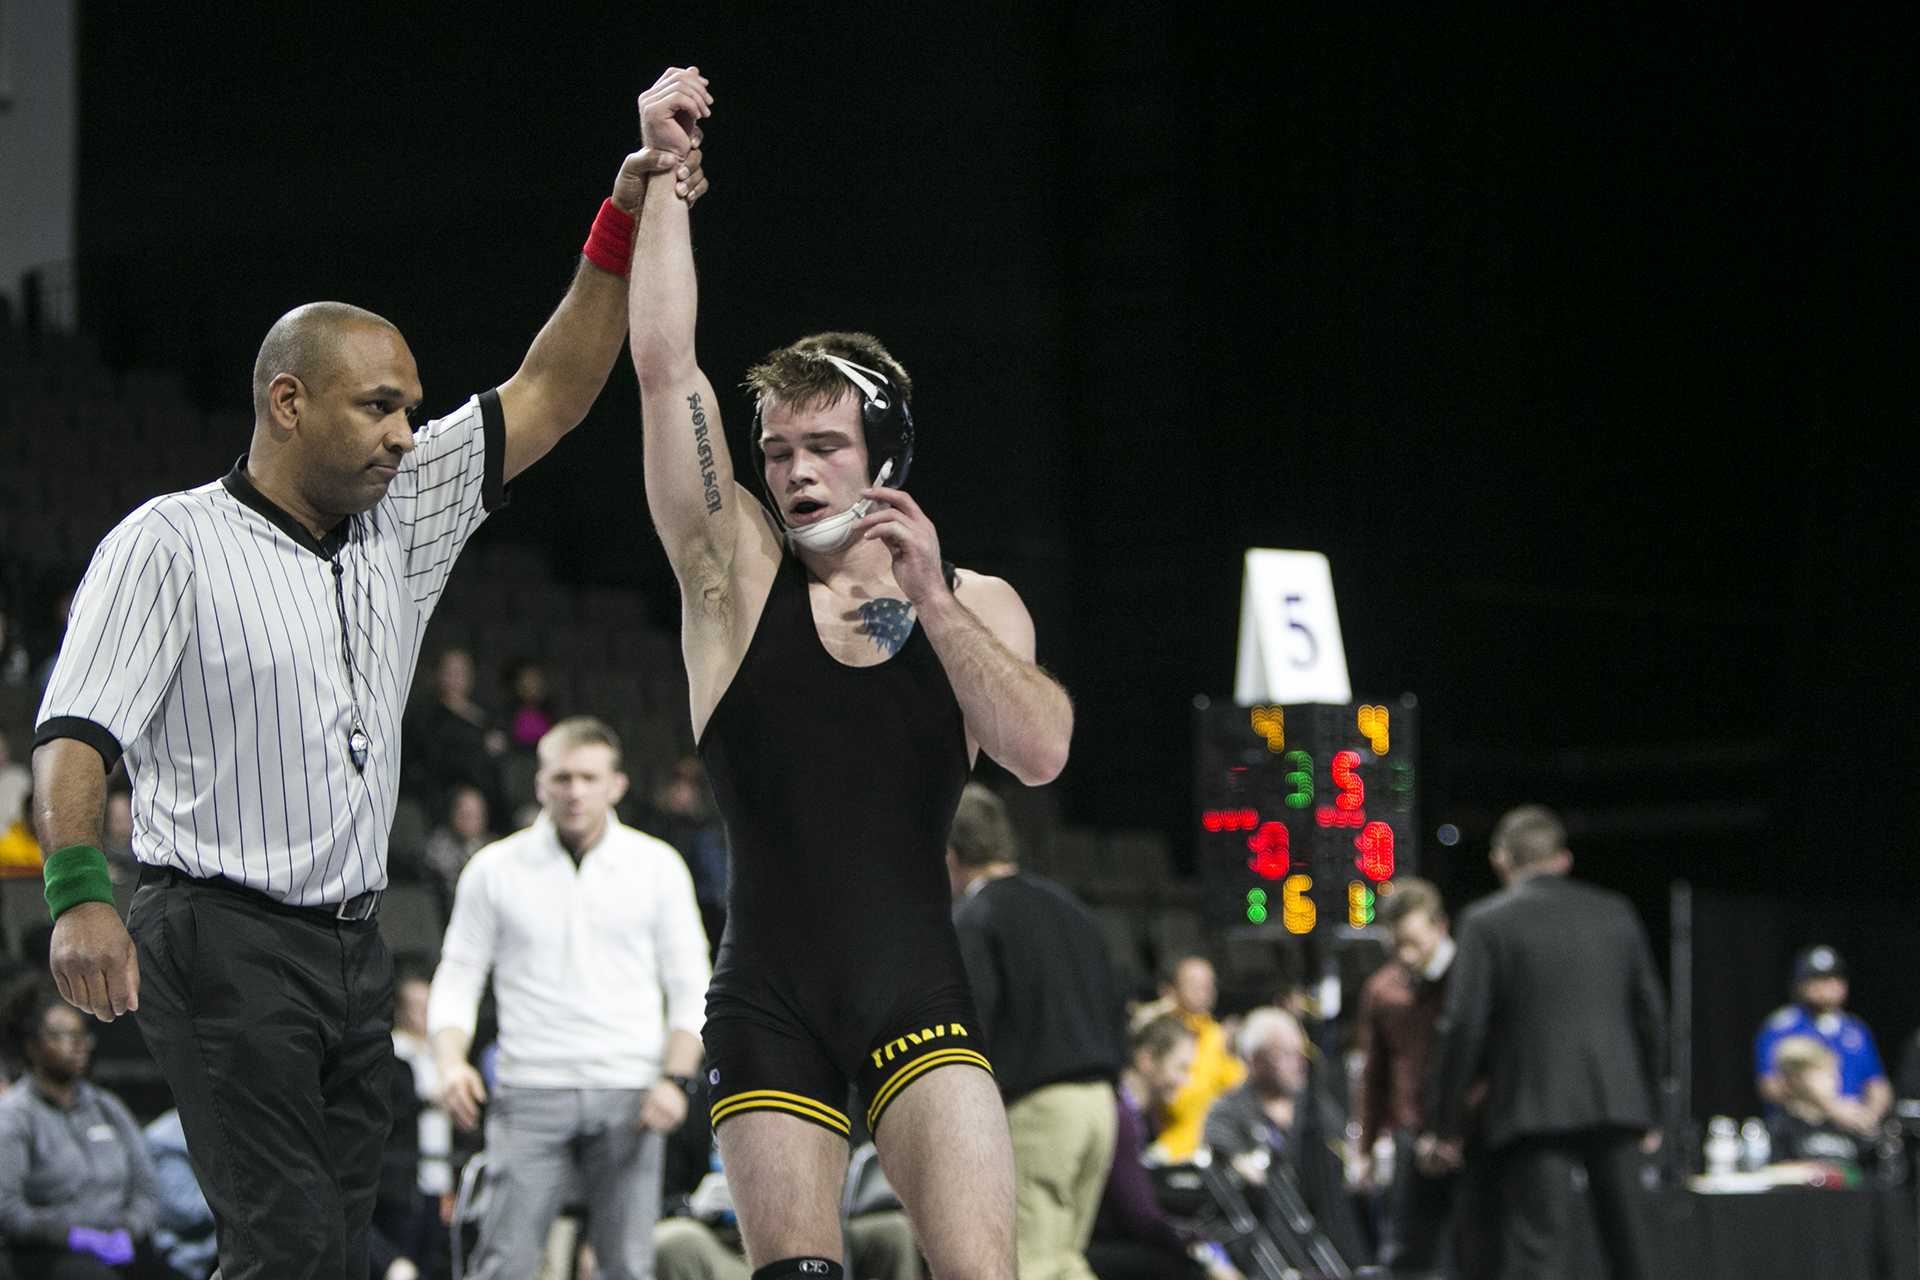 Iowa's 149-pound Brandon Sorensen has his arm raised after winning during the fourth session of the 55th Annual Midlands Championships in the Sears Centre in Hoffman Estates, Illinois, on Saturday, Dec. 30, 2017. (Joseph Cress/The Daily Iowan)